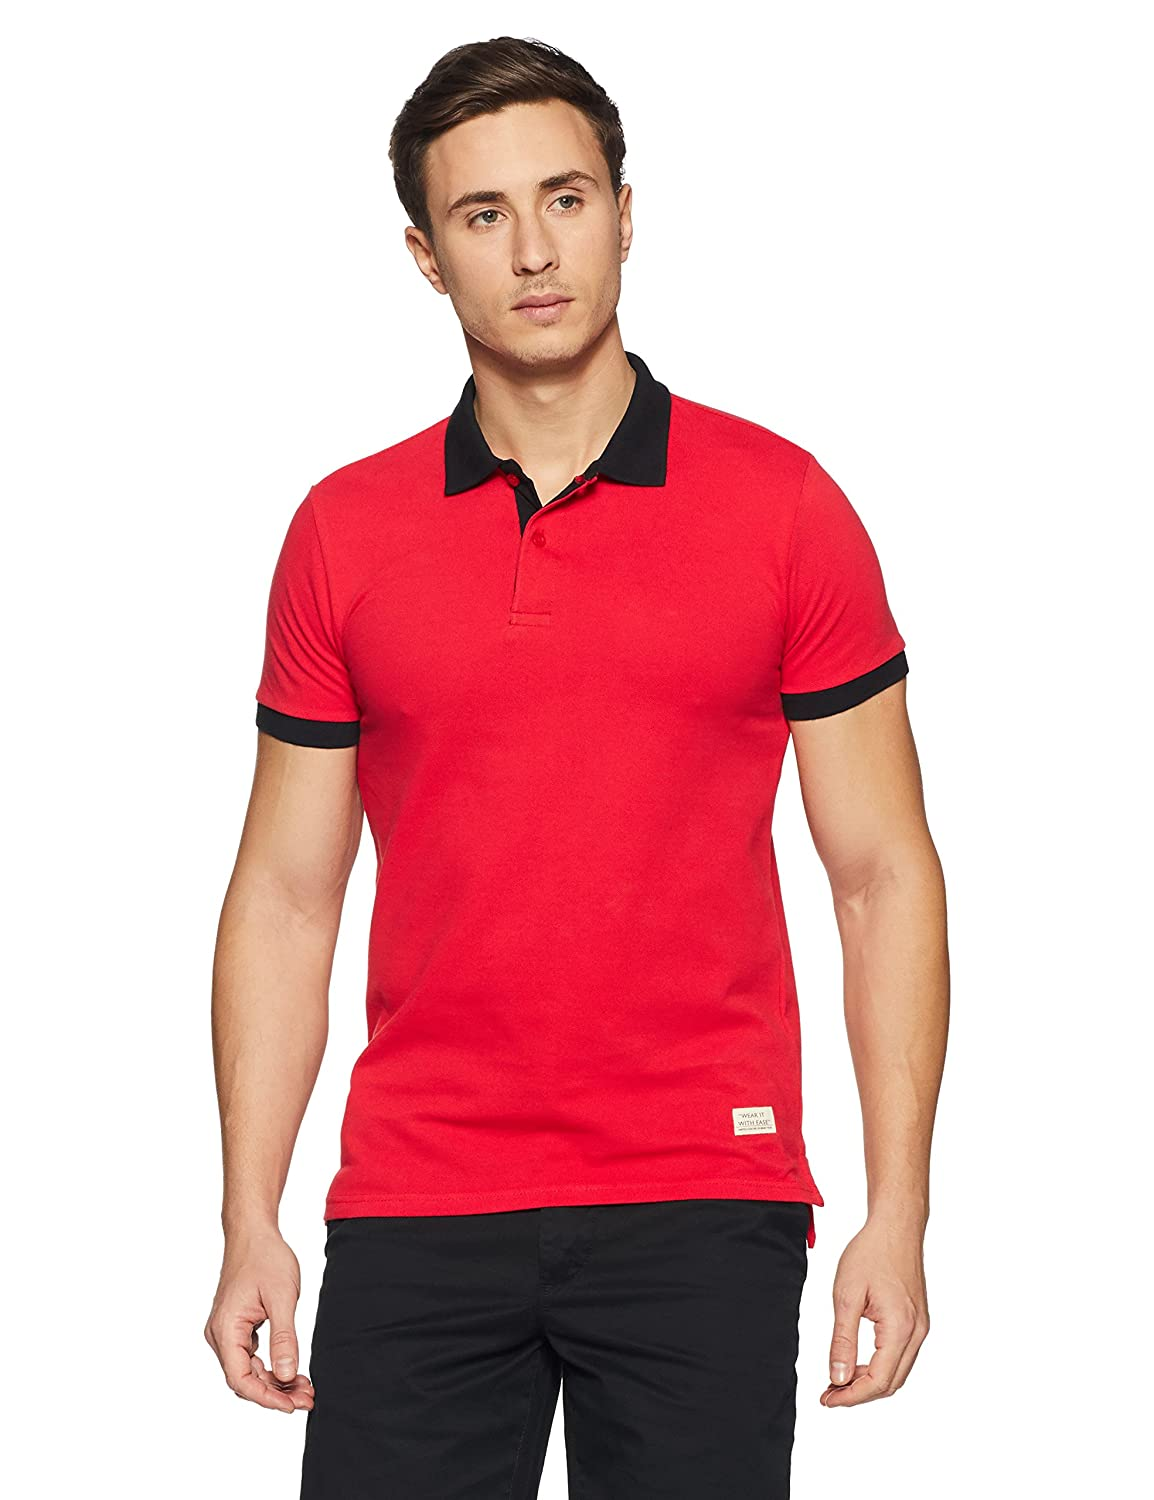 United Colors of Benetton Men's Solid Regular Fit Cotton Polo